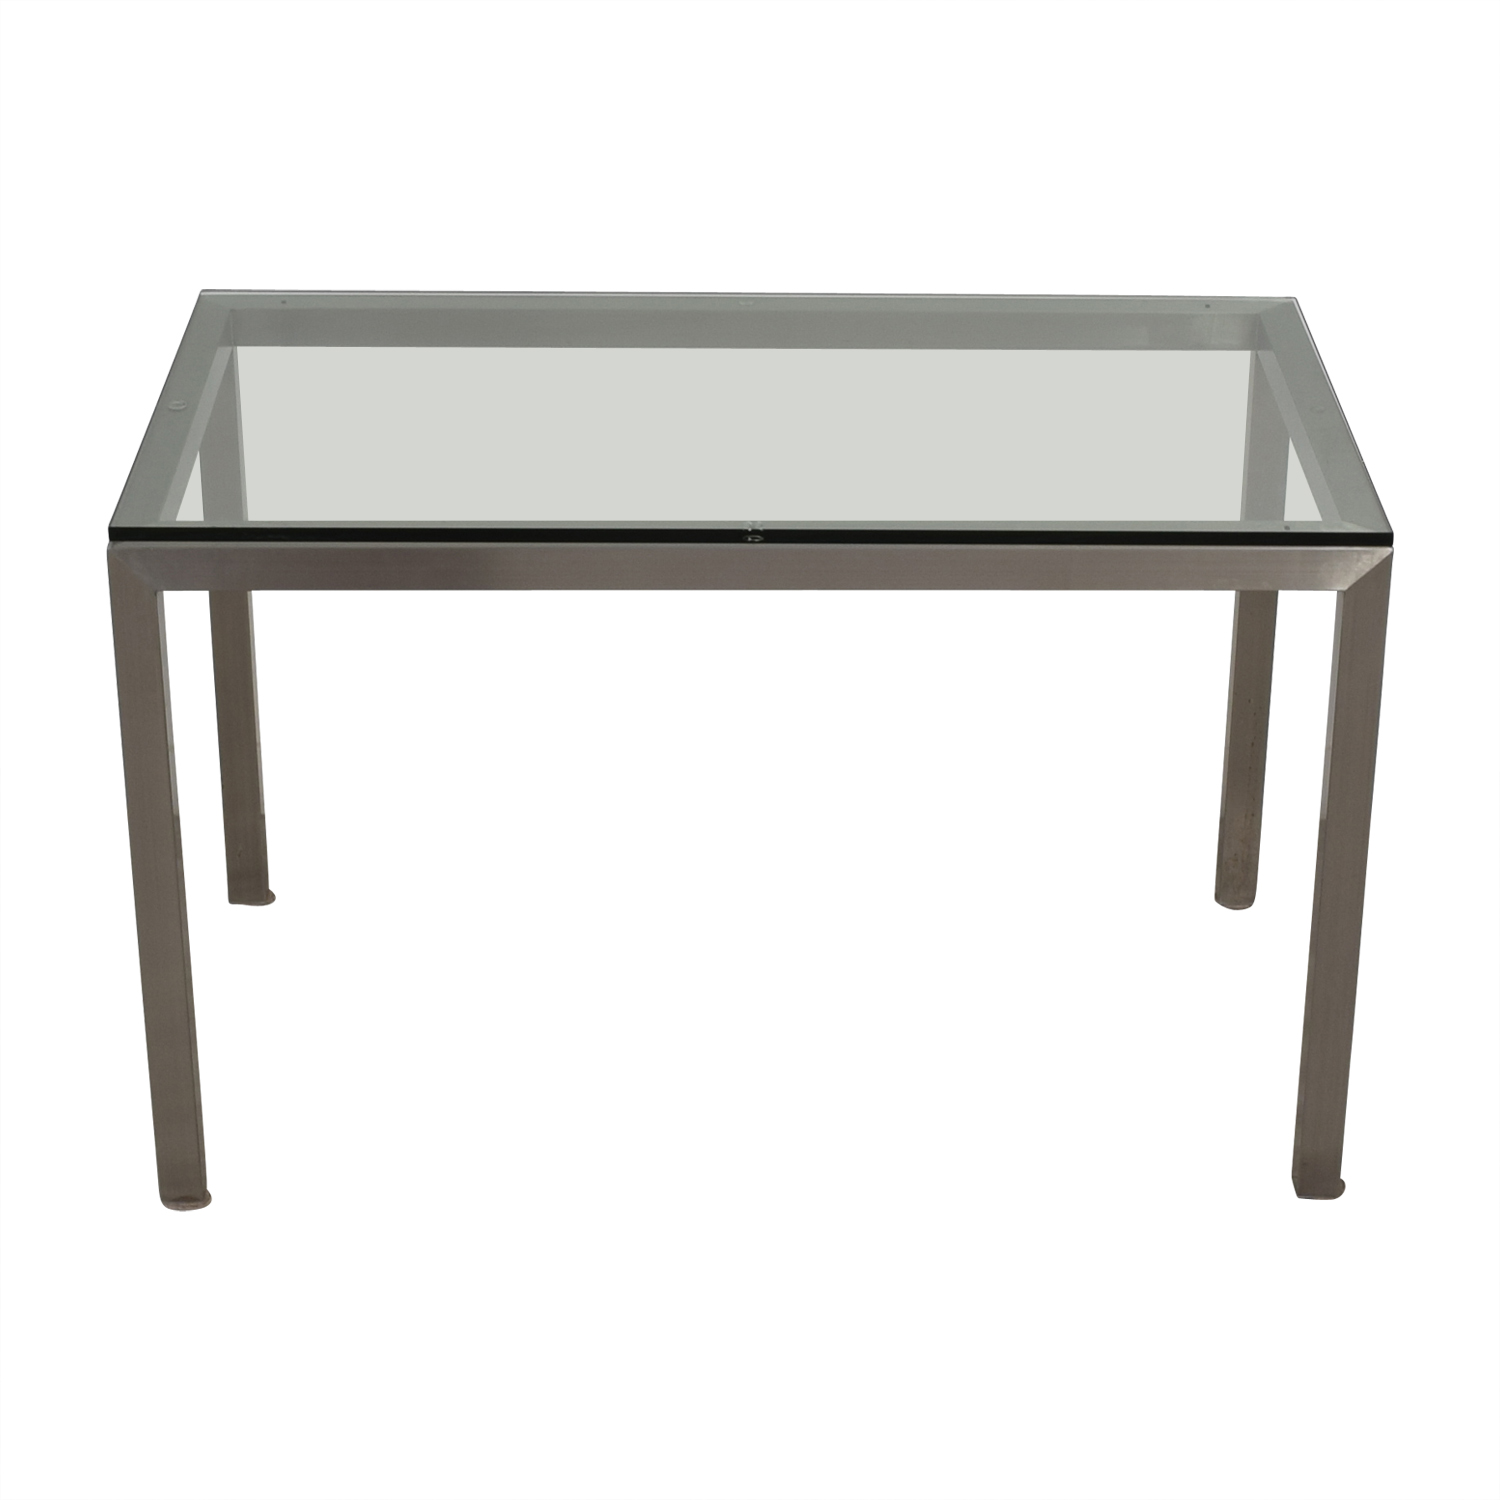 Crate & Barrel Crate & Barrel Glass and Stainless Steel Dining Table on sale